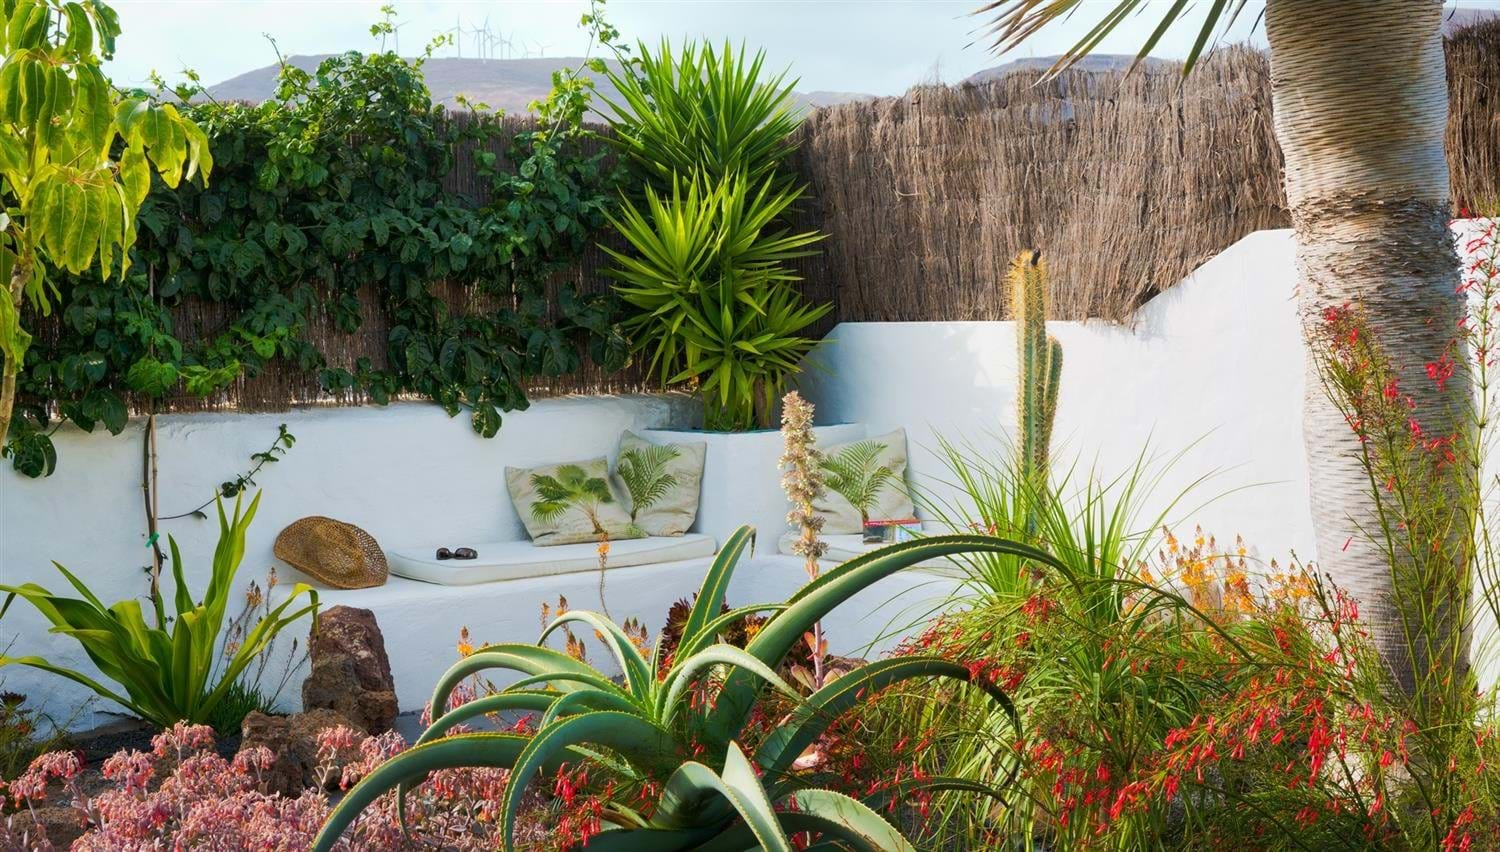 Sunny corner spot in the tropical garden at Finca Botanico in Lanzarote